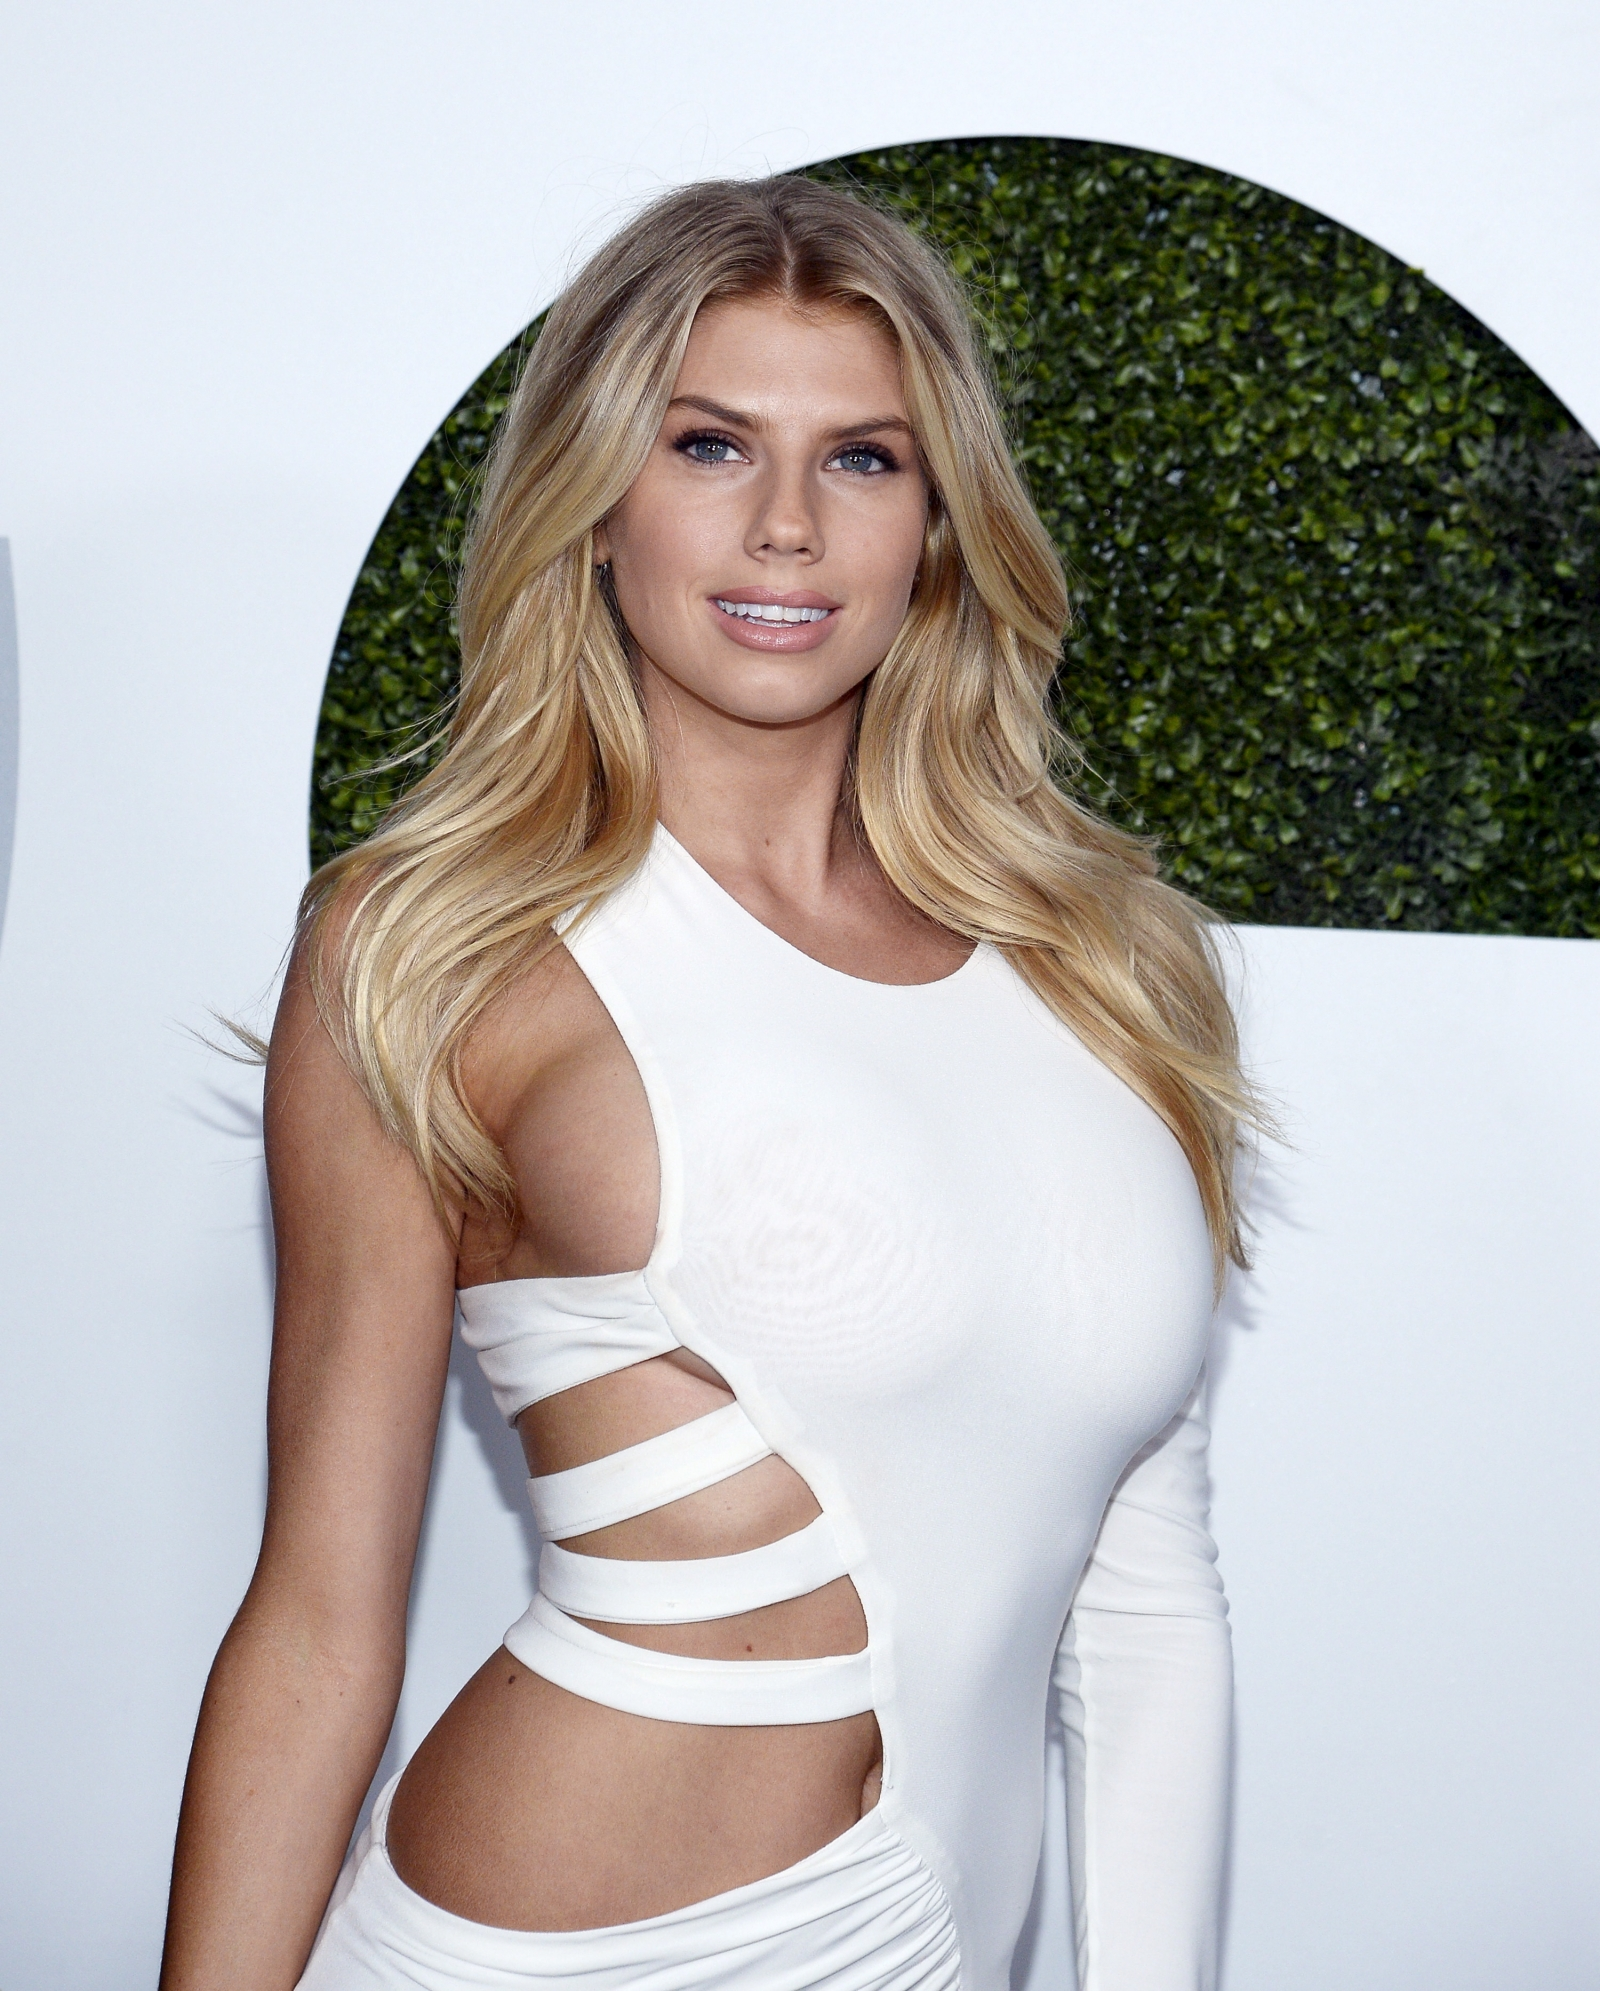 Photo Charlotte Mckinney nudes (52 photos), Pussy, Fappening, Selfie, panties 2006